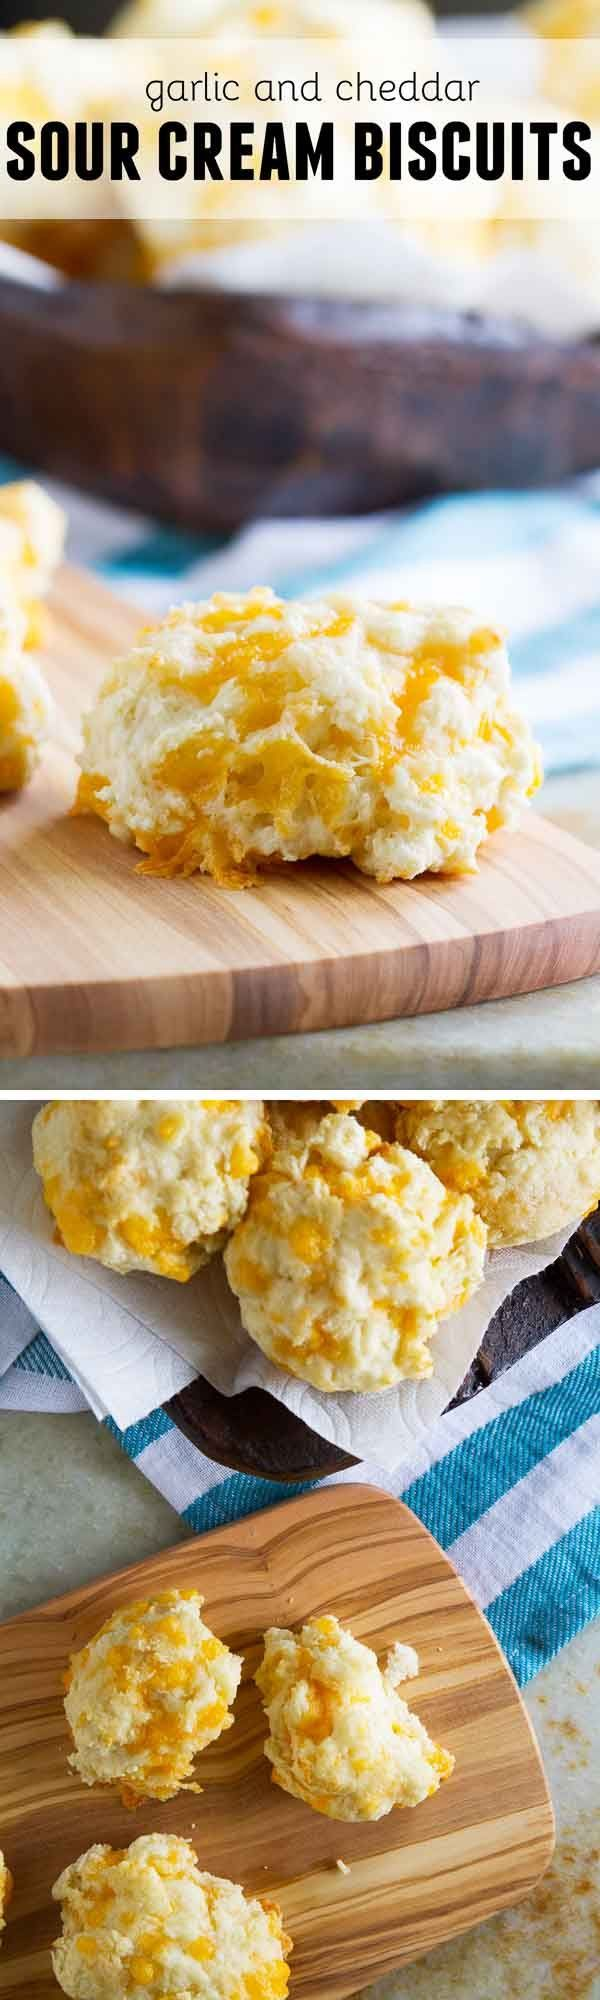 Light and fluffy, these Garlic and Cheddar Sour Cream Biscuits are a cinch to throw together and are done in less than 30 minutes.